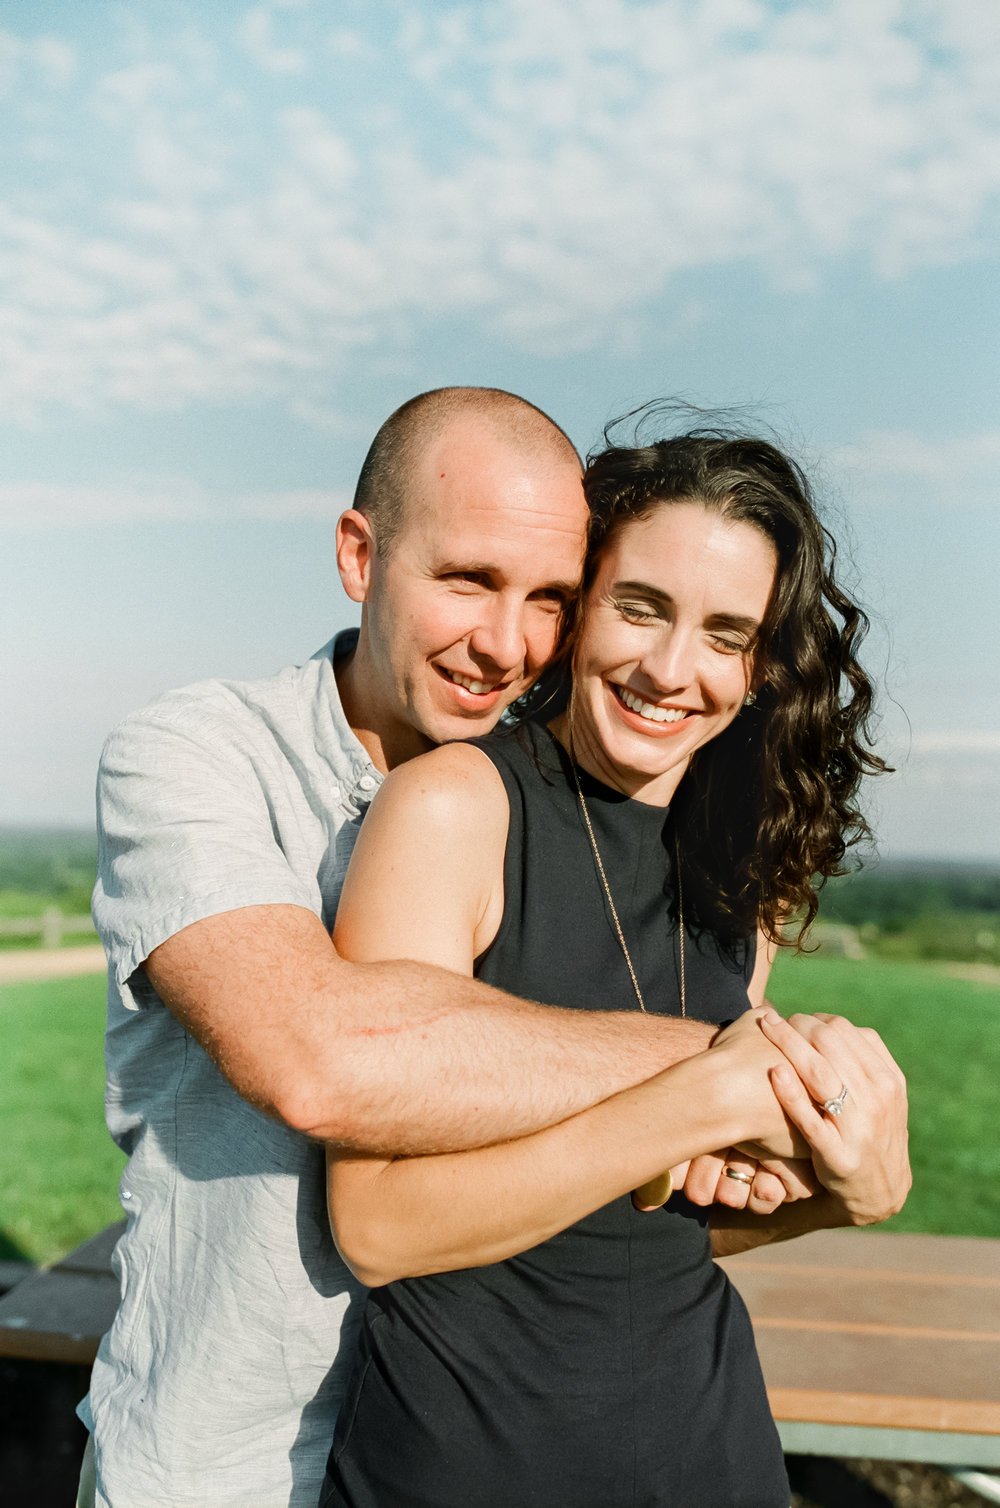 lifestyle-film-family-photographer-raleigh-north-raleigh-landfill-park